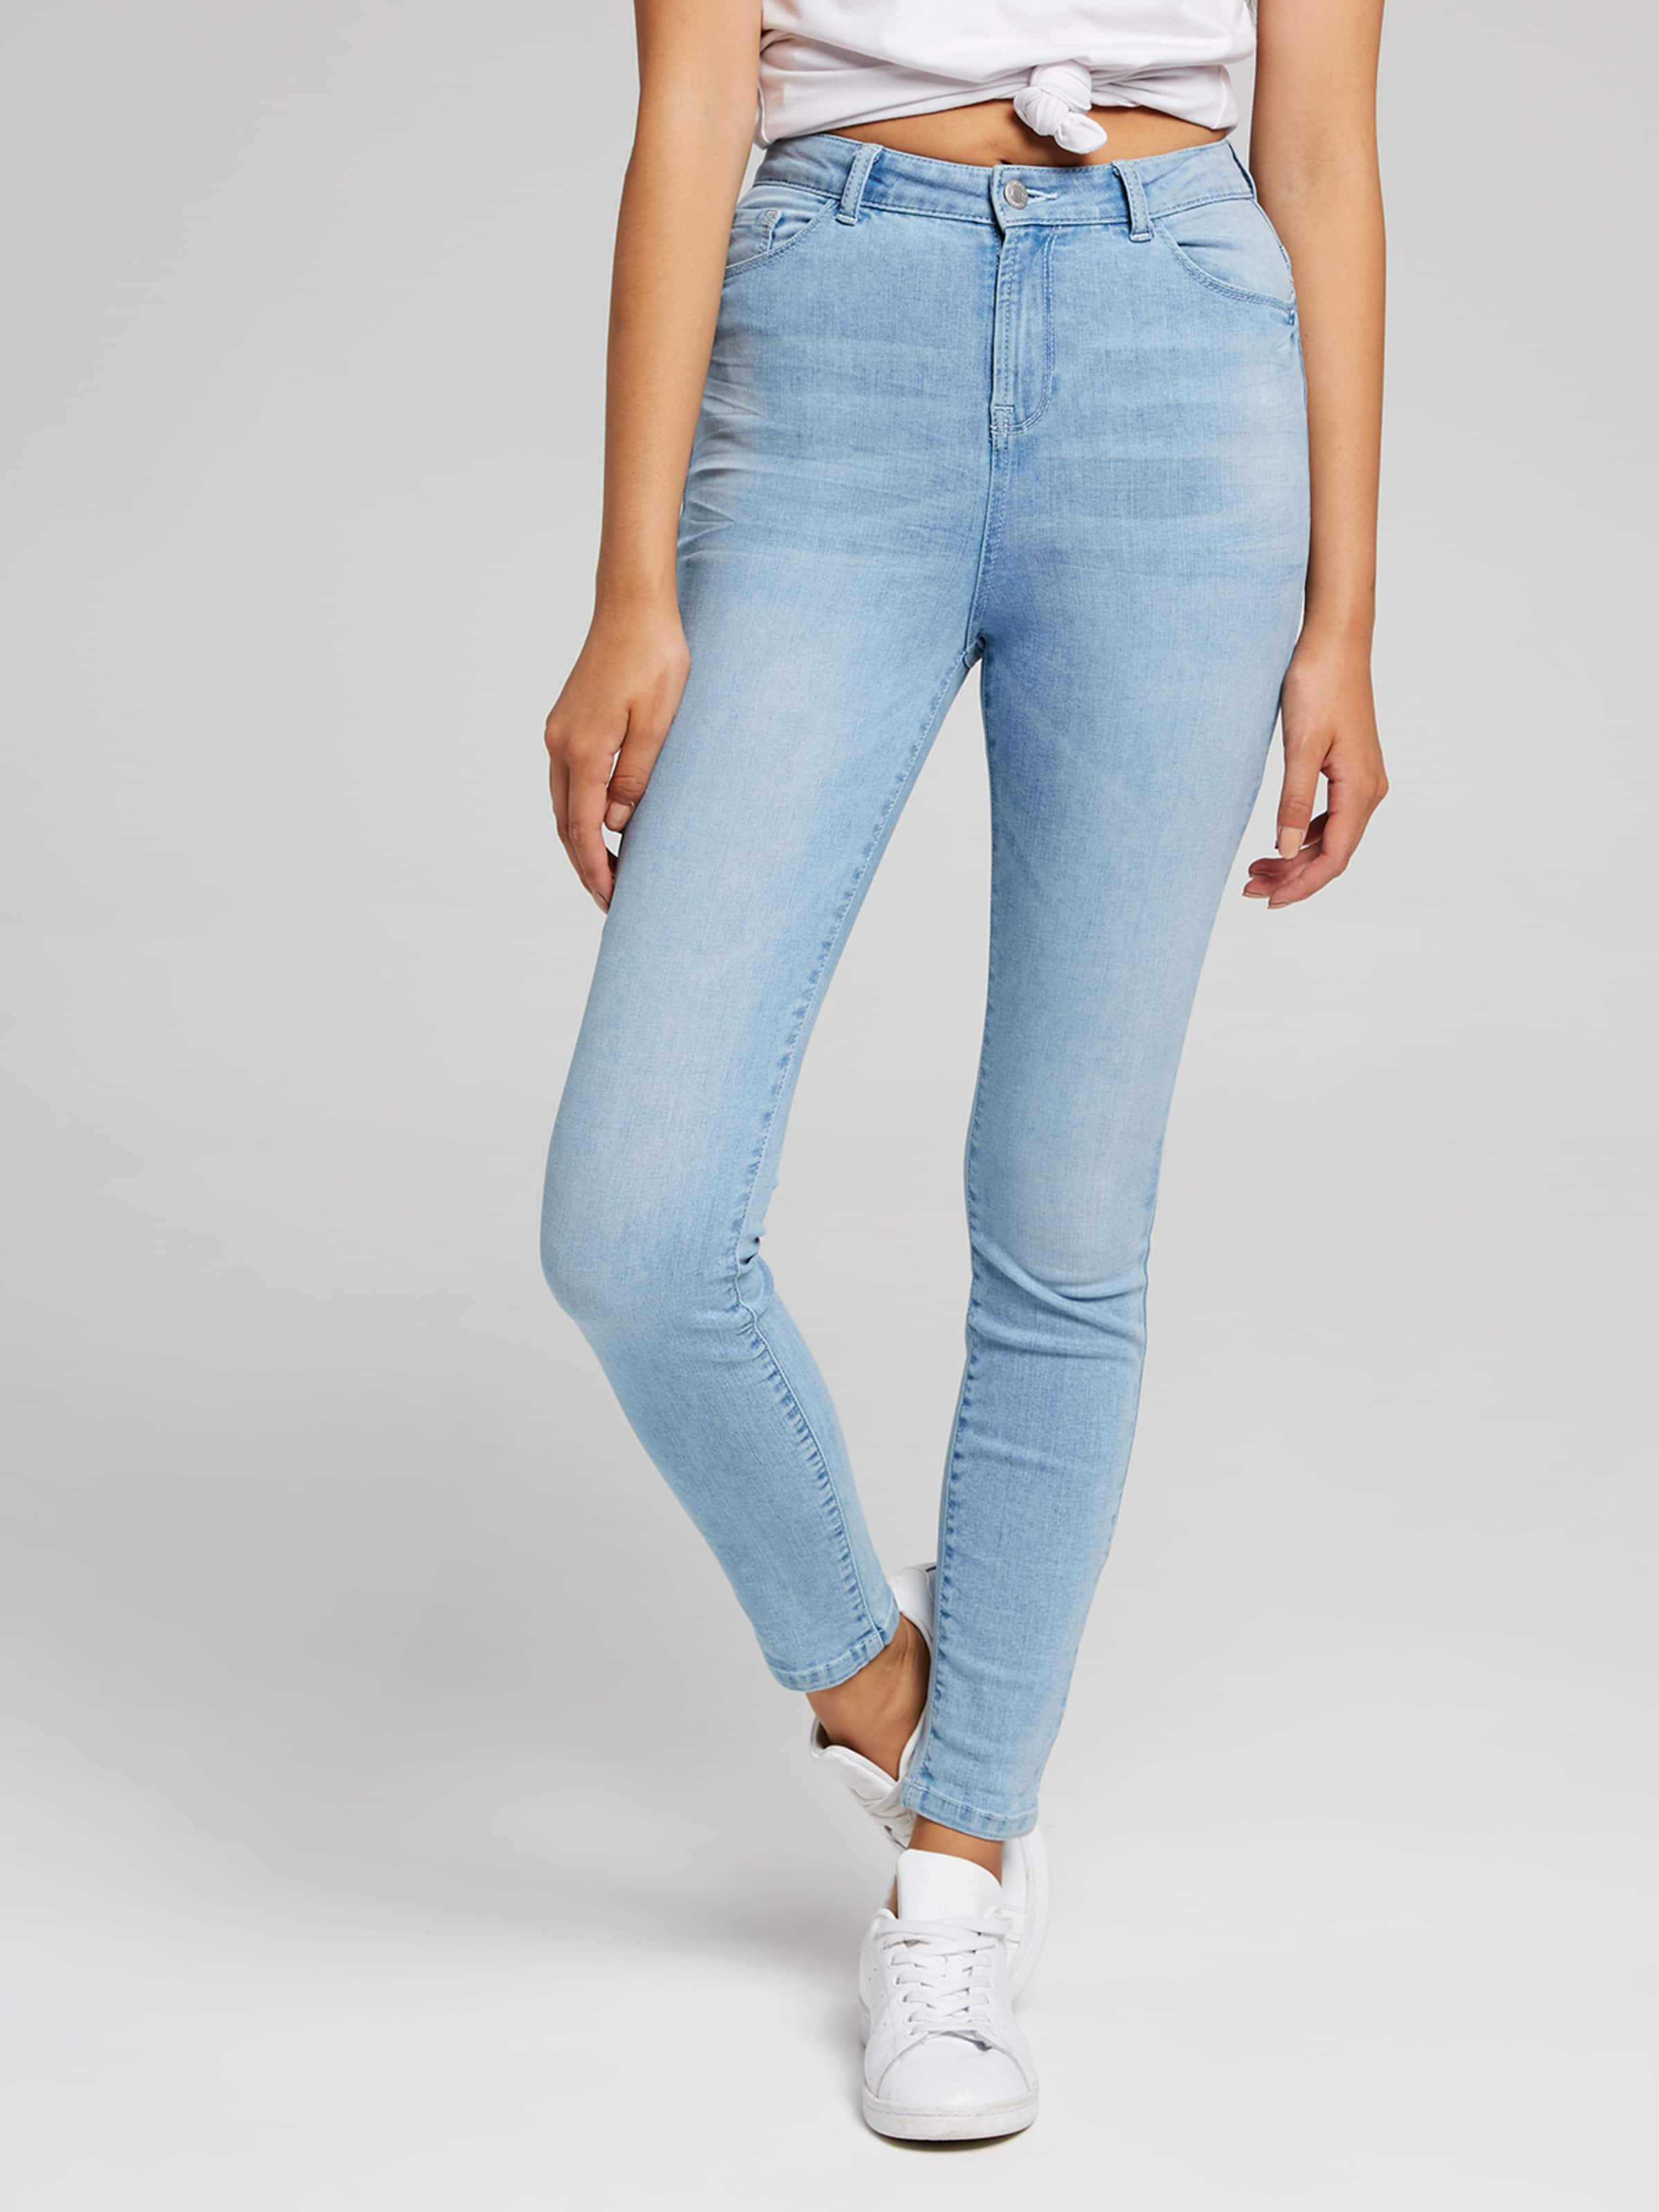 c84252c58aab Image for Jessie High Rise Ankle Skinny Jean from Jay Jays ...